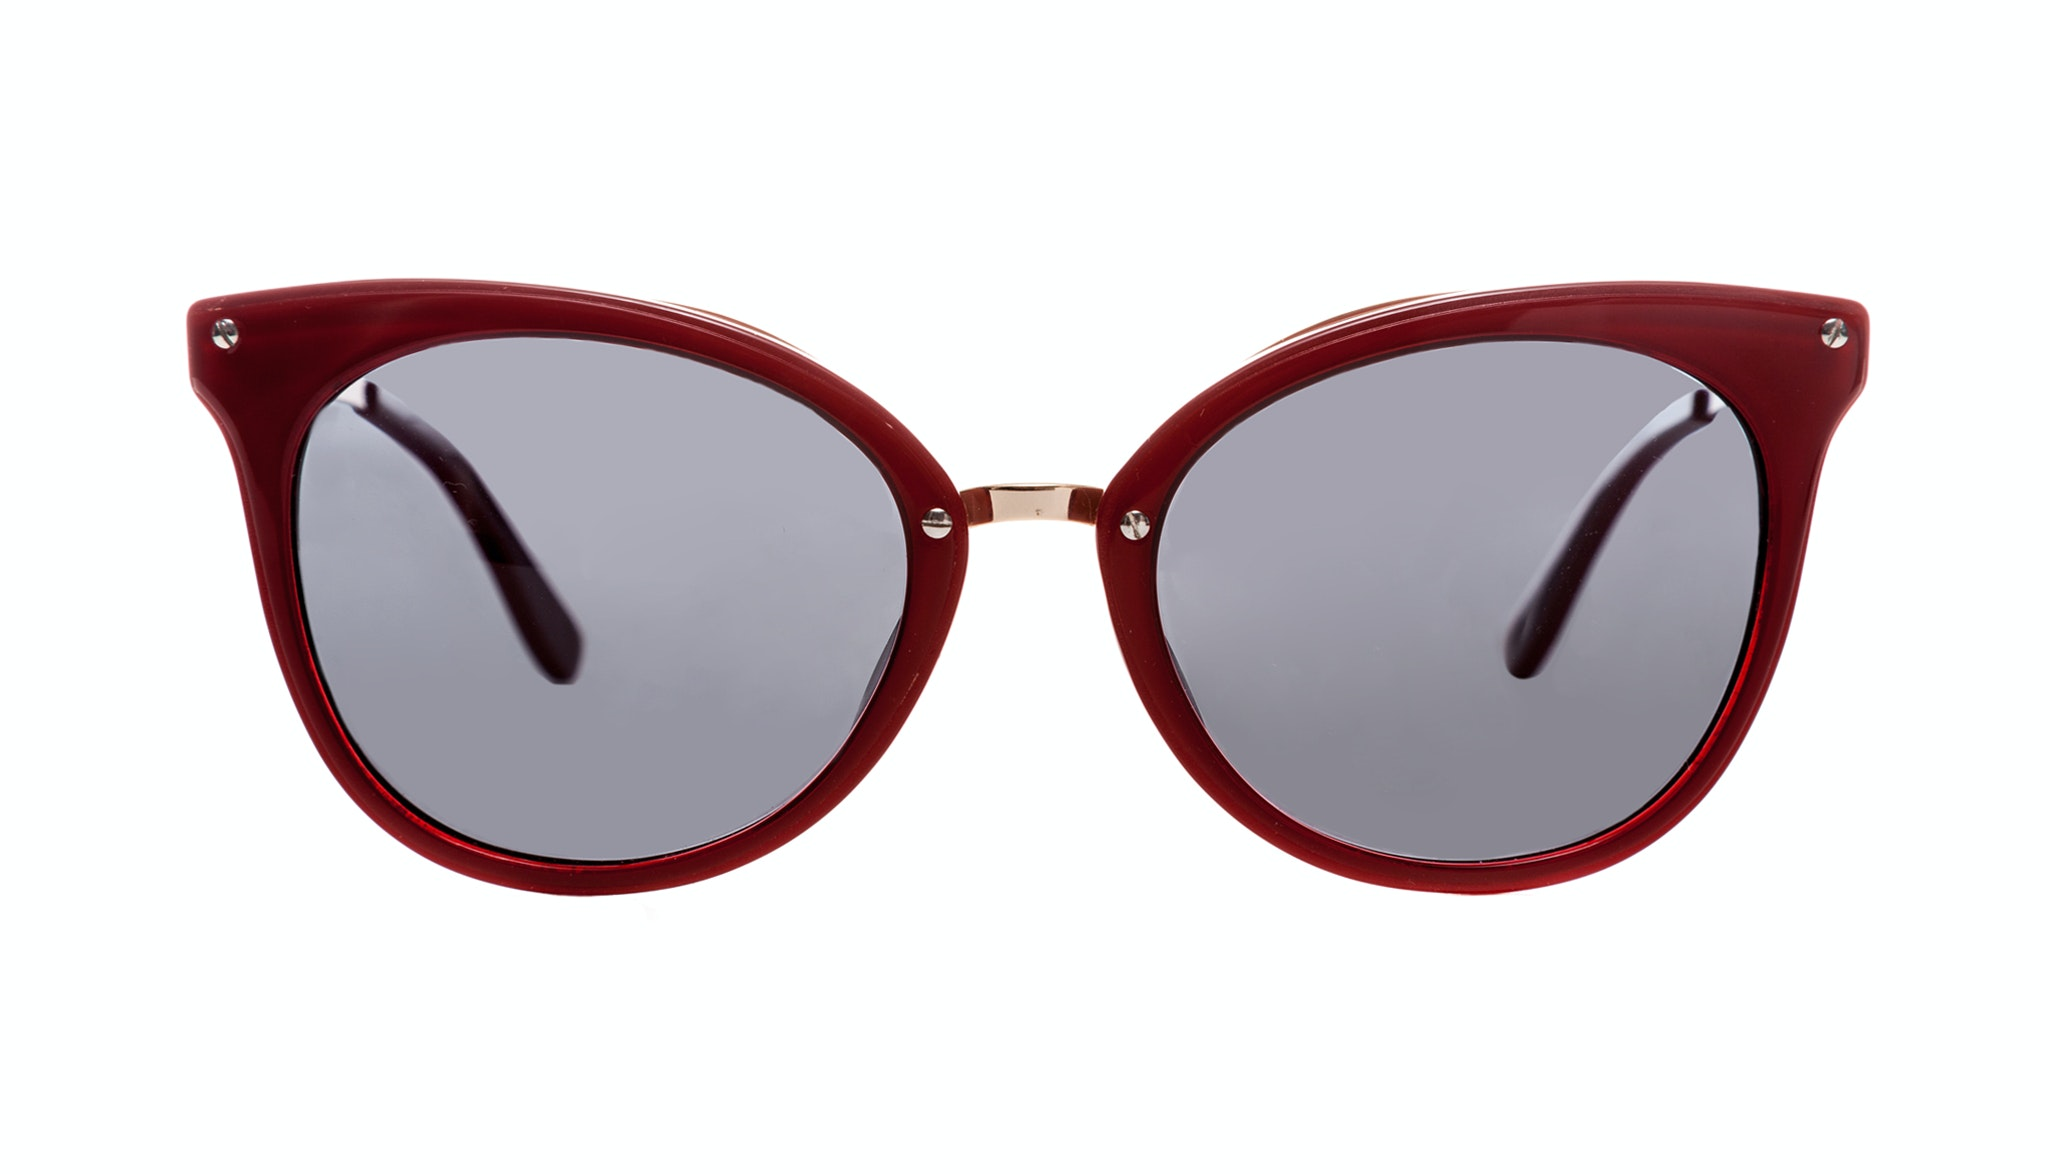 Affordable Fashion Glasses Cat Eye Sunglasses Women BFF French Kiss Front